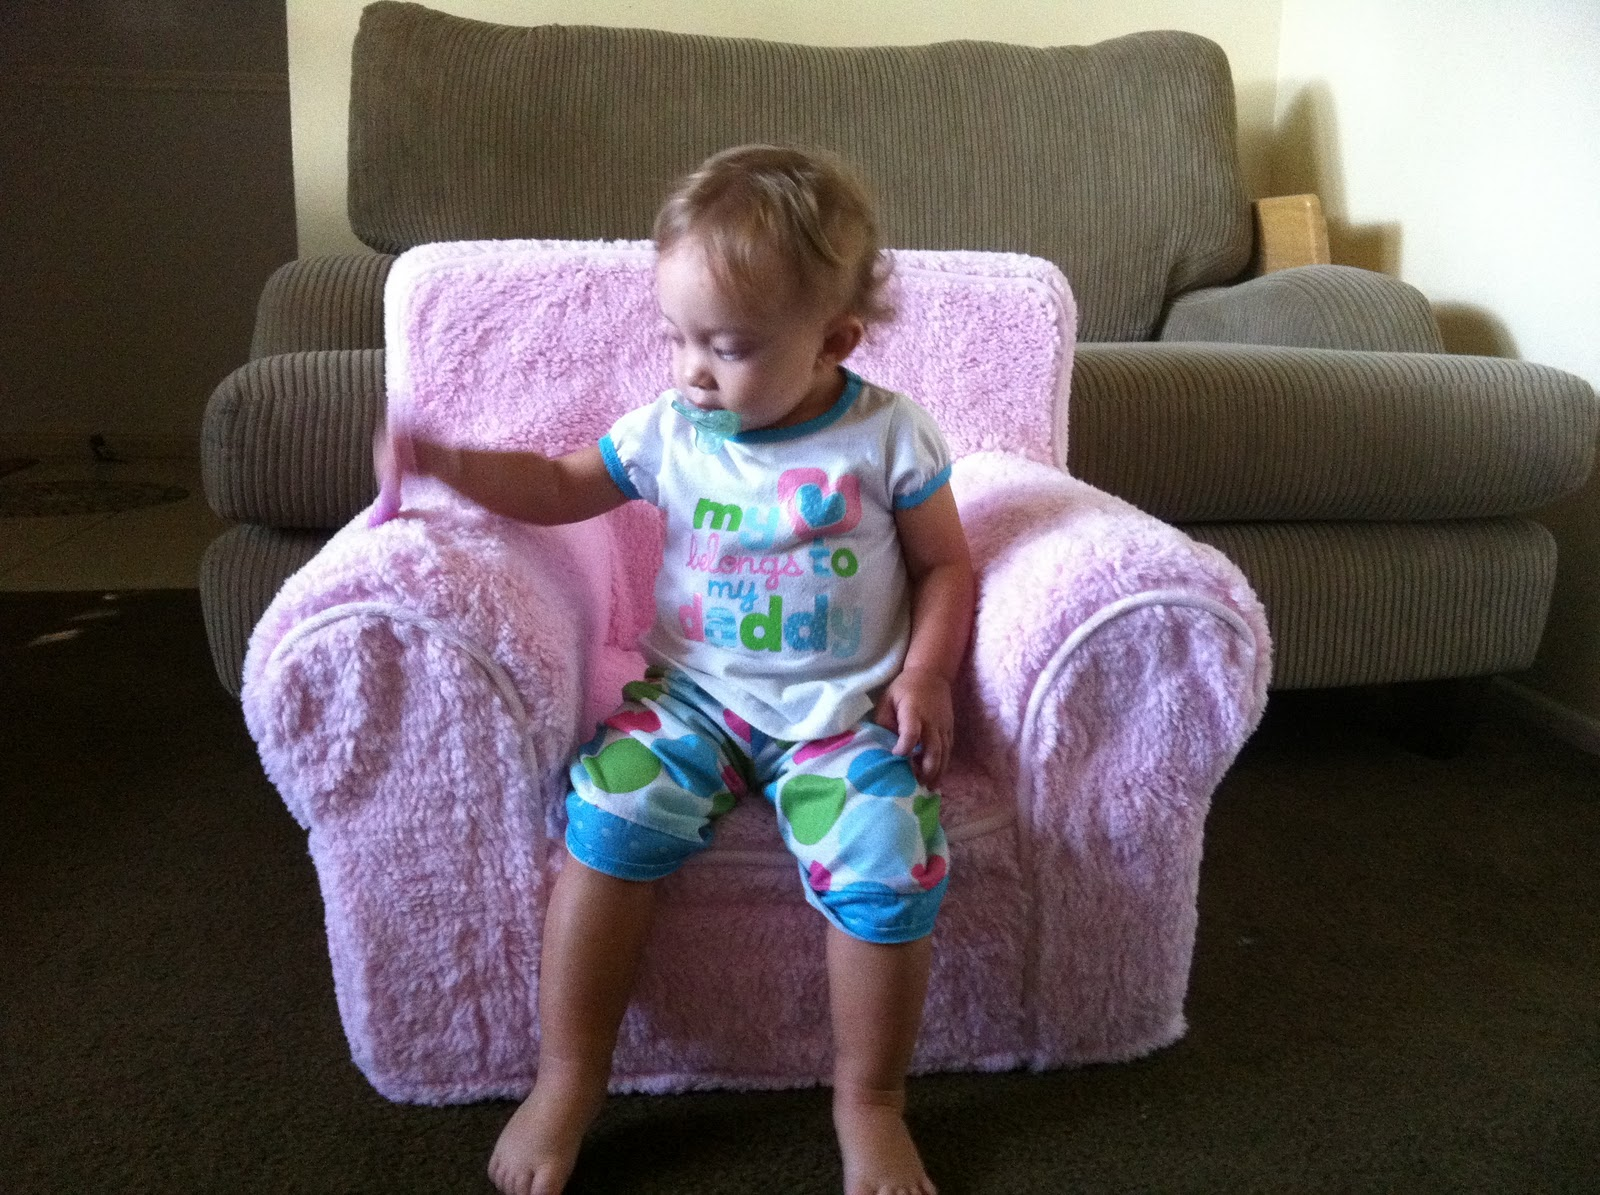 pottery barn my first anywhere chair oversized bean bags chairs kids quotanywhere quot review double duty mommy